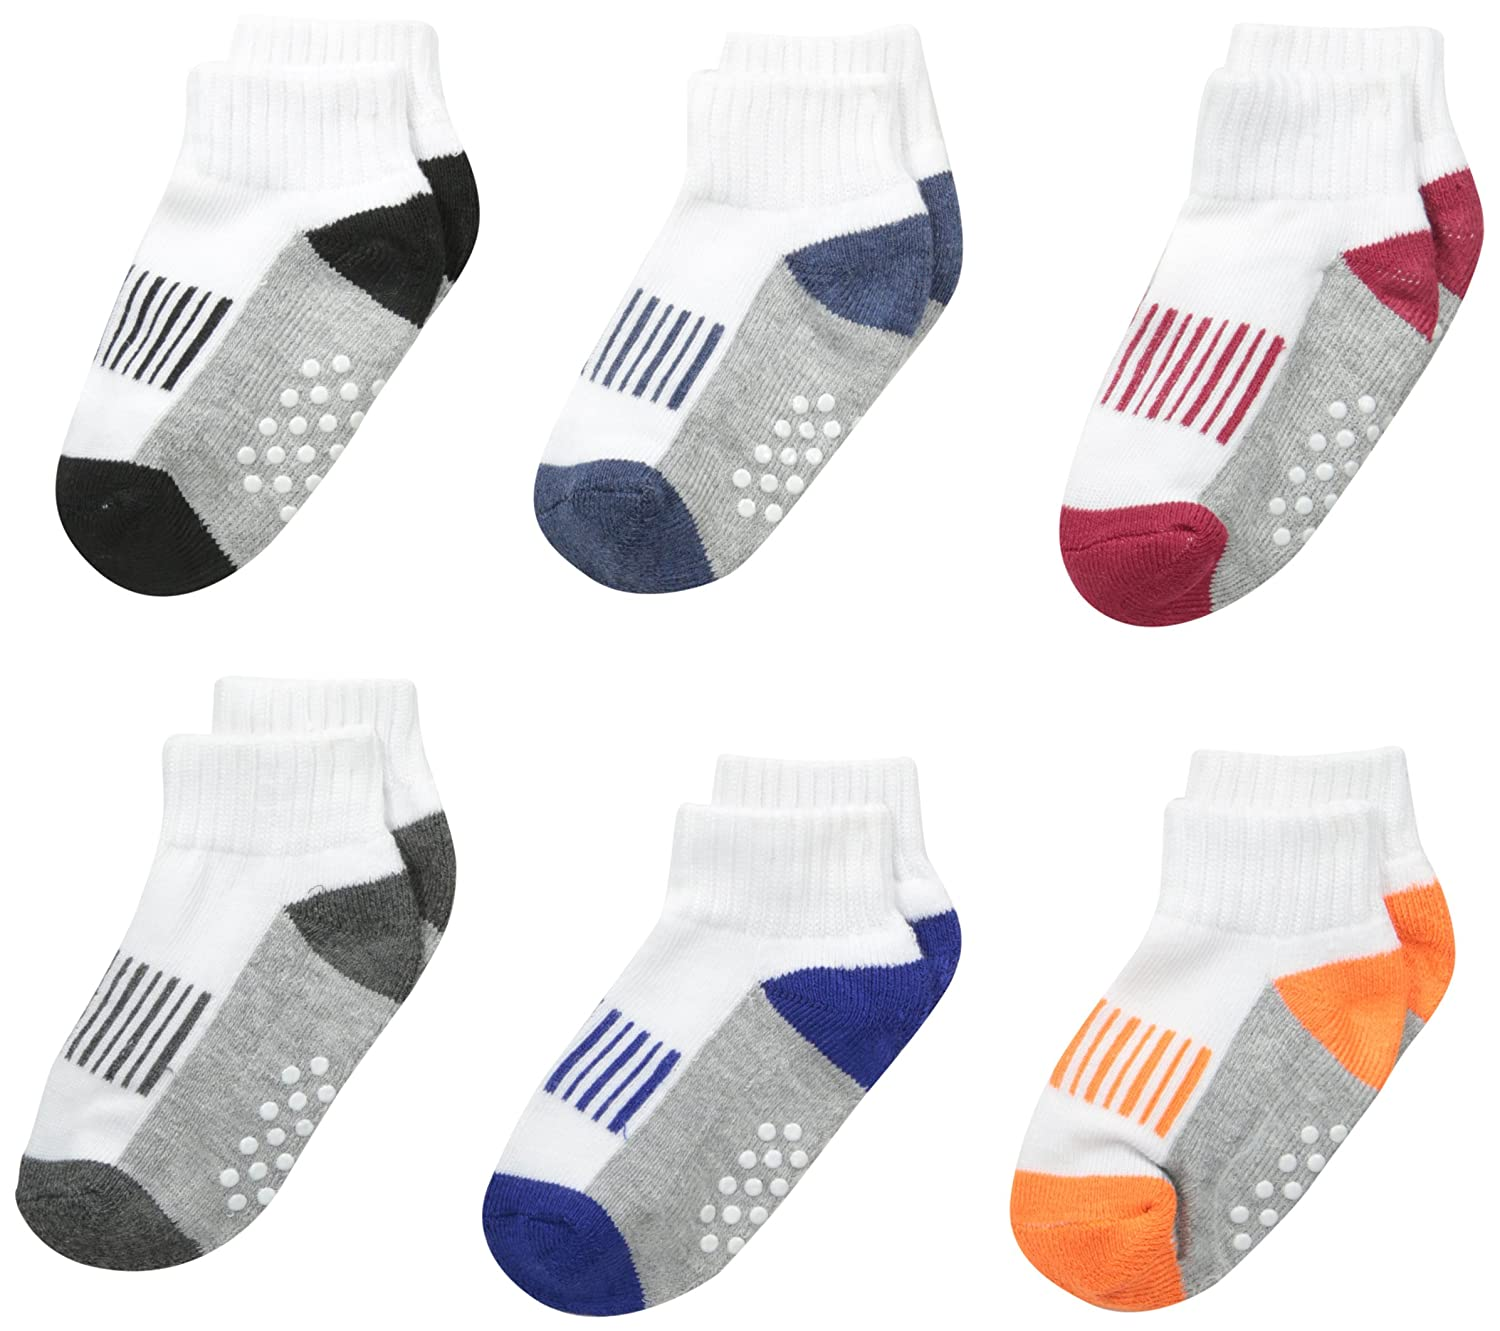 Jefferies Socks Boys' Sporty Half Cushion Quarter Socks 6 Pair Pack 2344